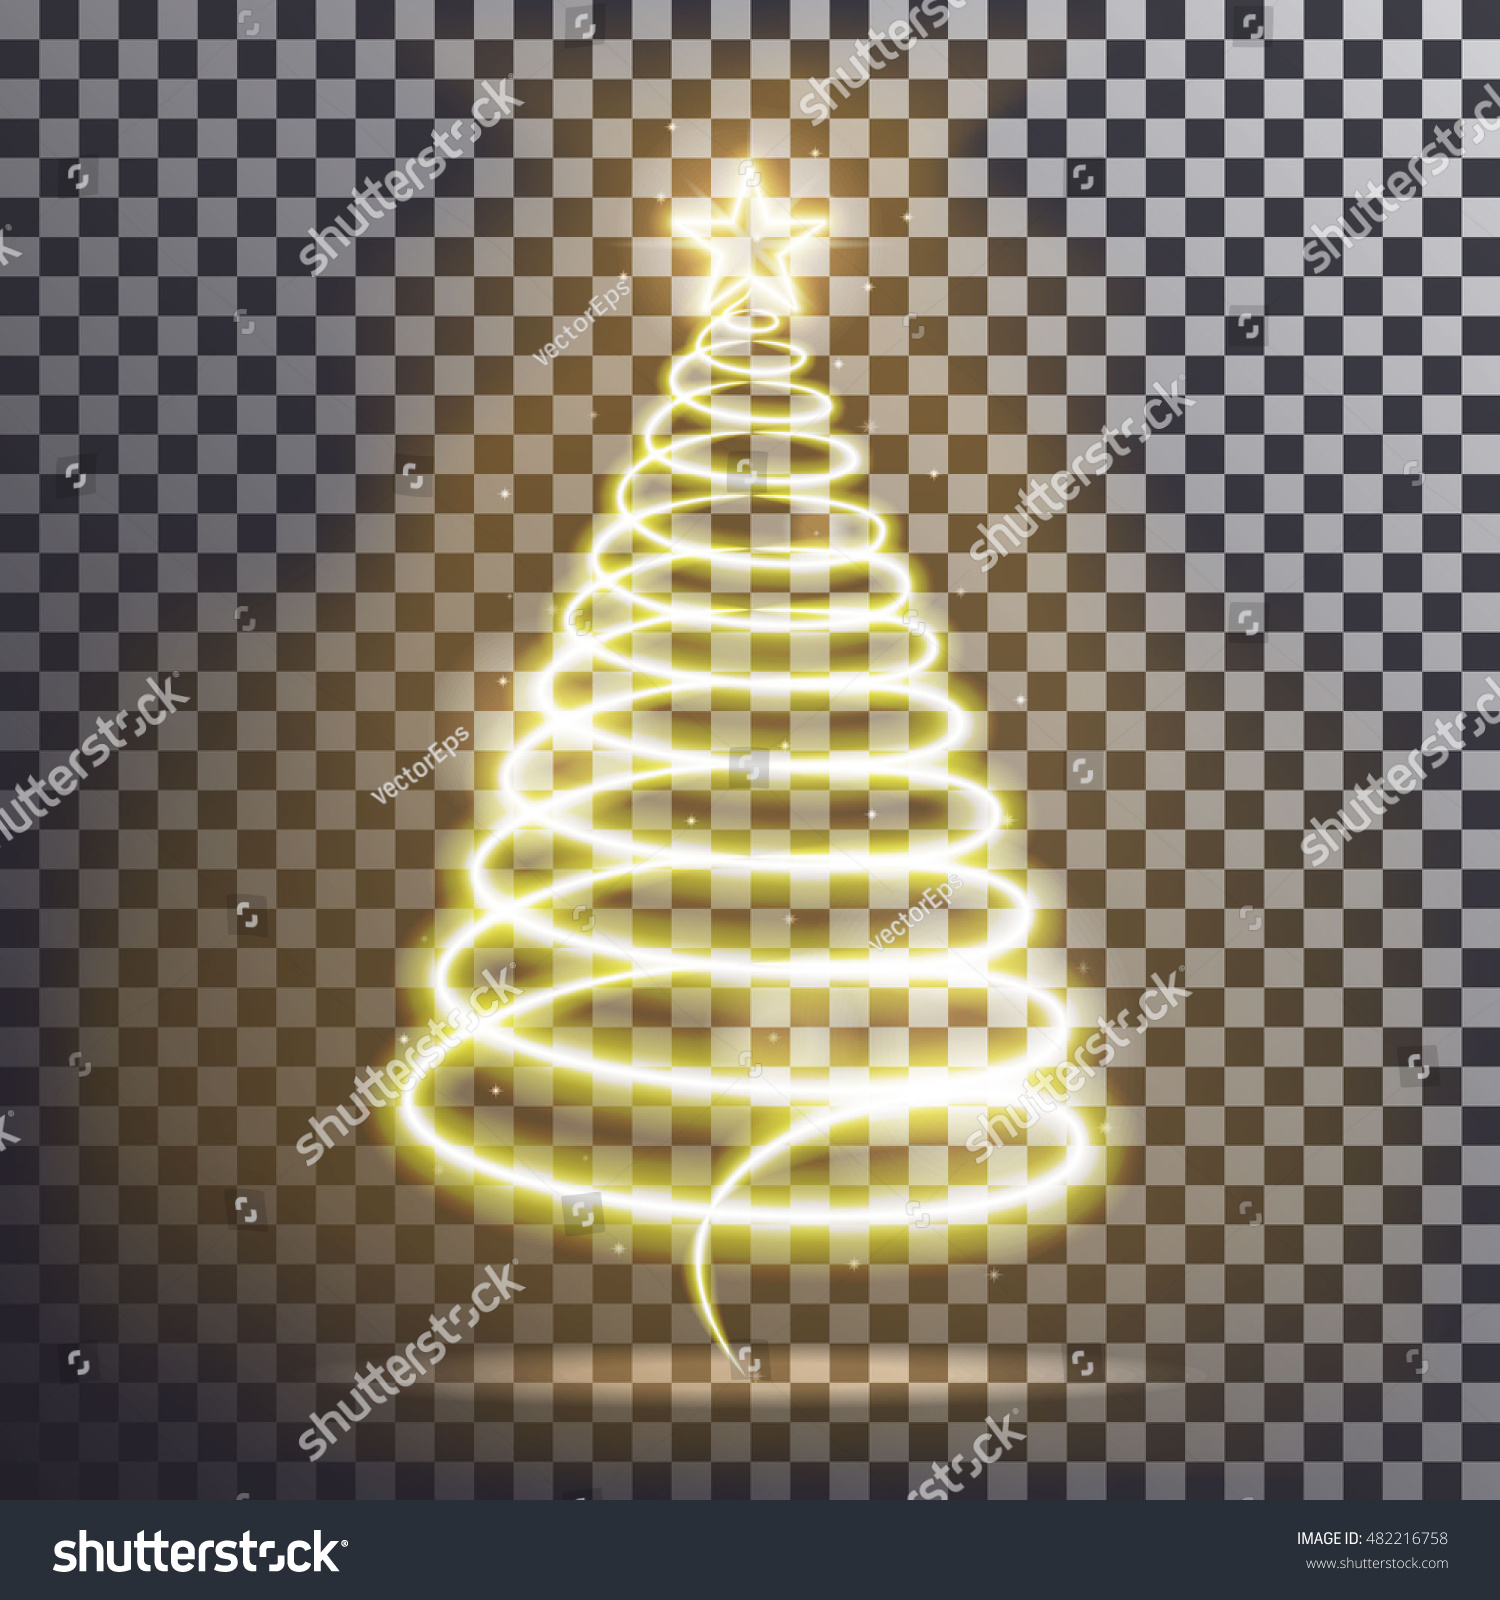 Golden Christmas Tree Vector Light Effect Stock Vector Royalty Free